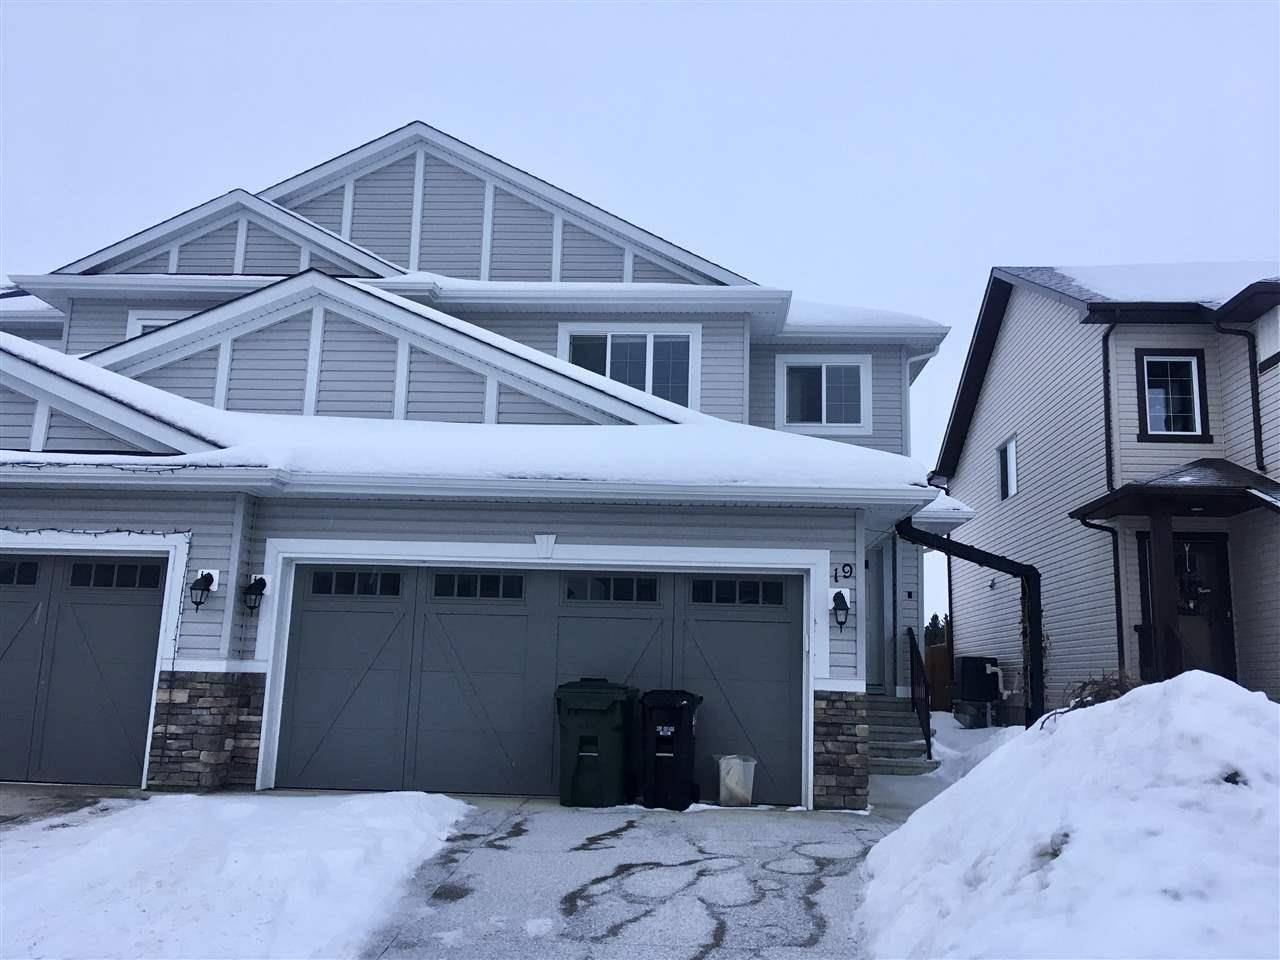 Townhouse for sale at 19 Halladay Blvd Spruce Grove Alberta - MLS: E4188905